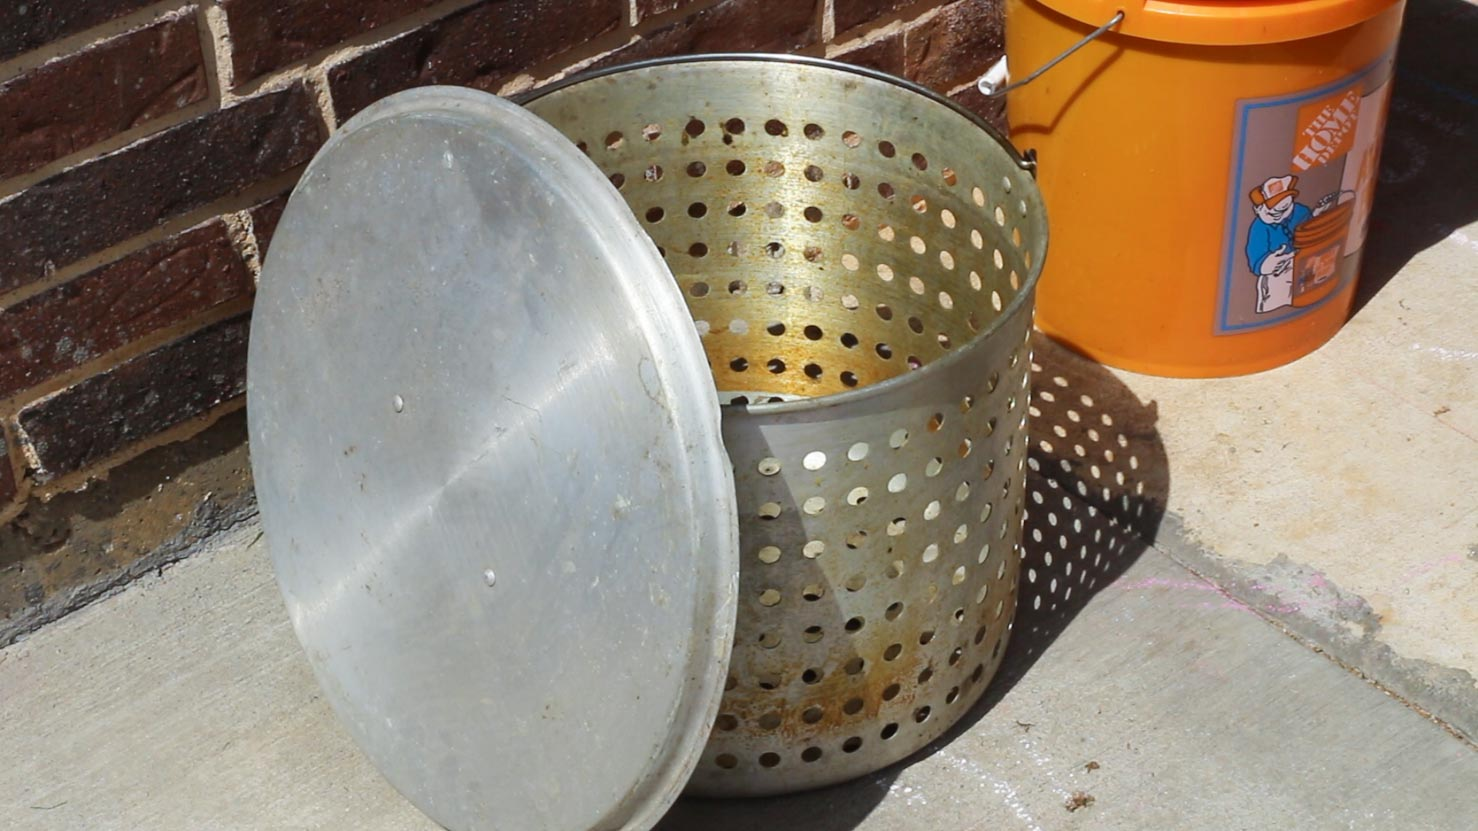 Crawfish boiling pot - steamer basker